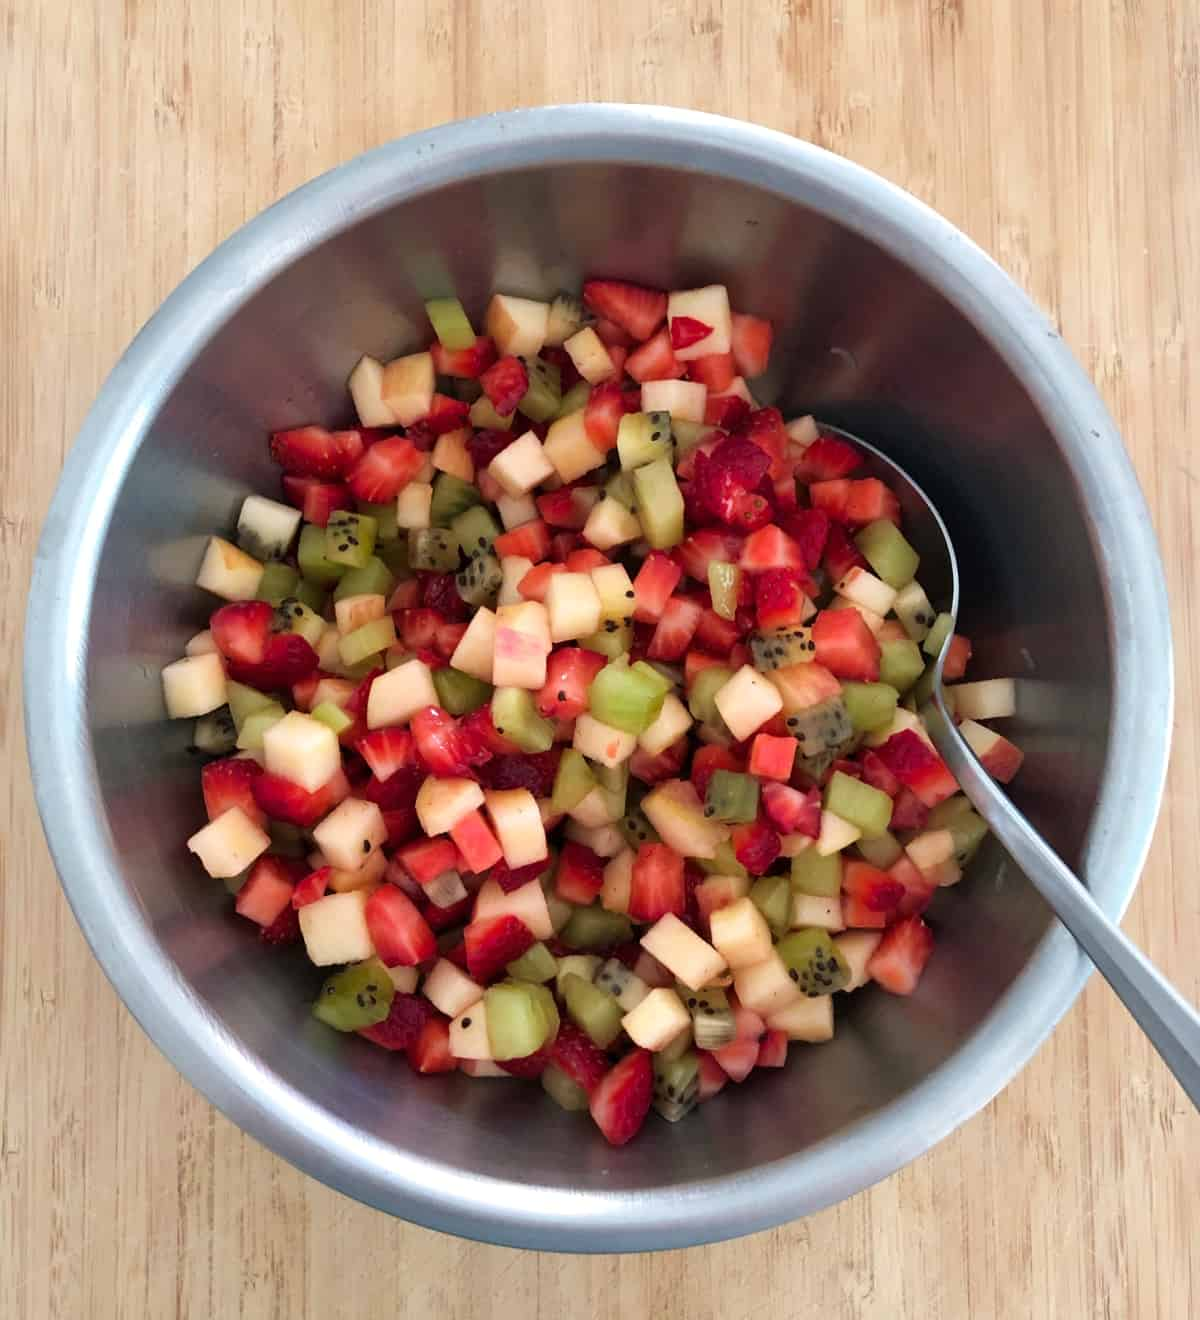 Diced apple, strawberry and kiwifruit in stainless mixing bowl with spoon.